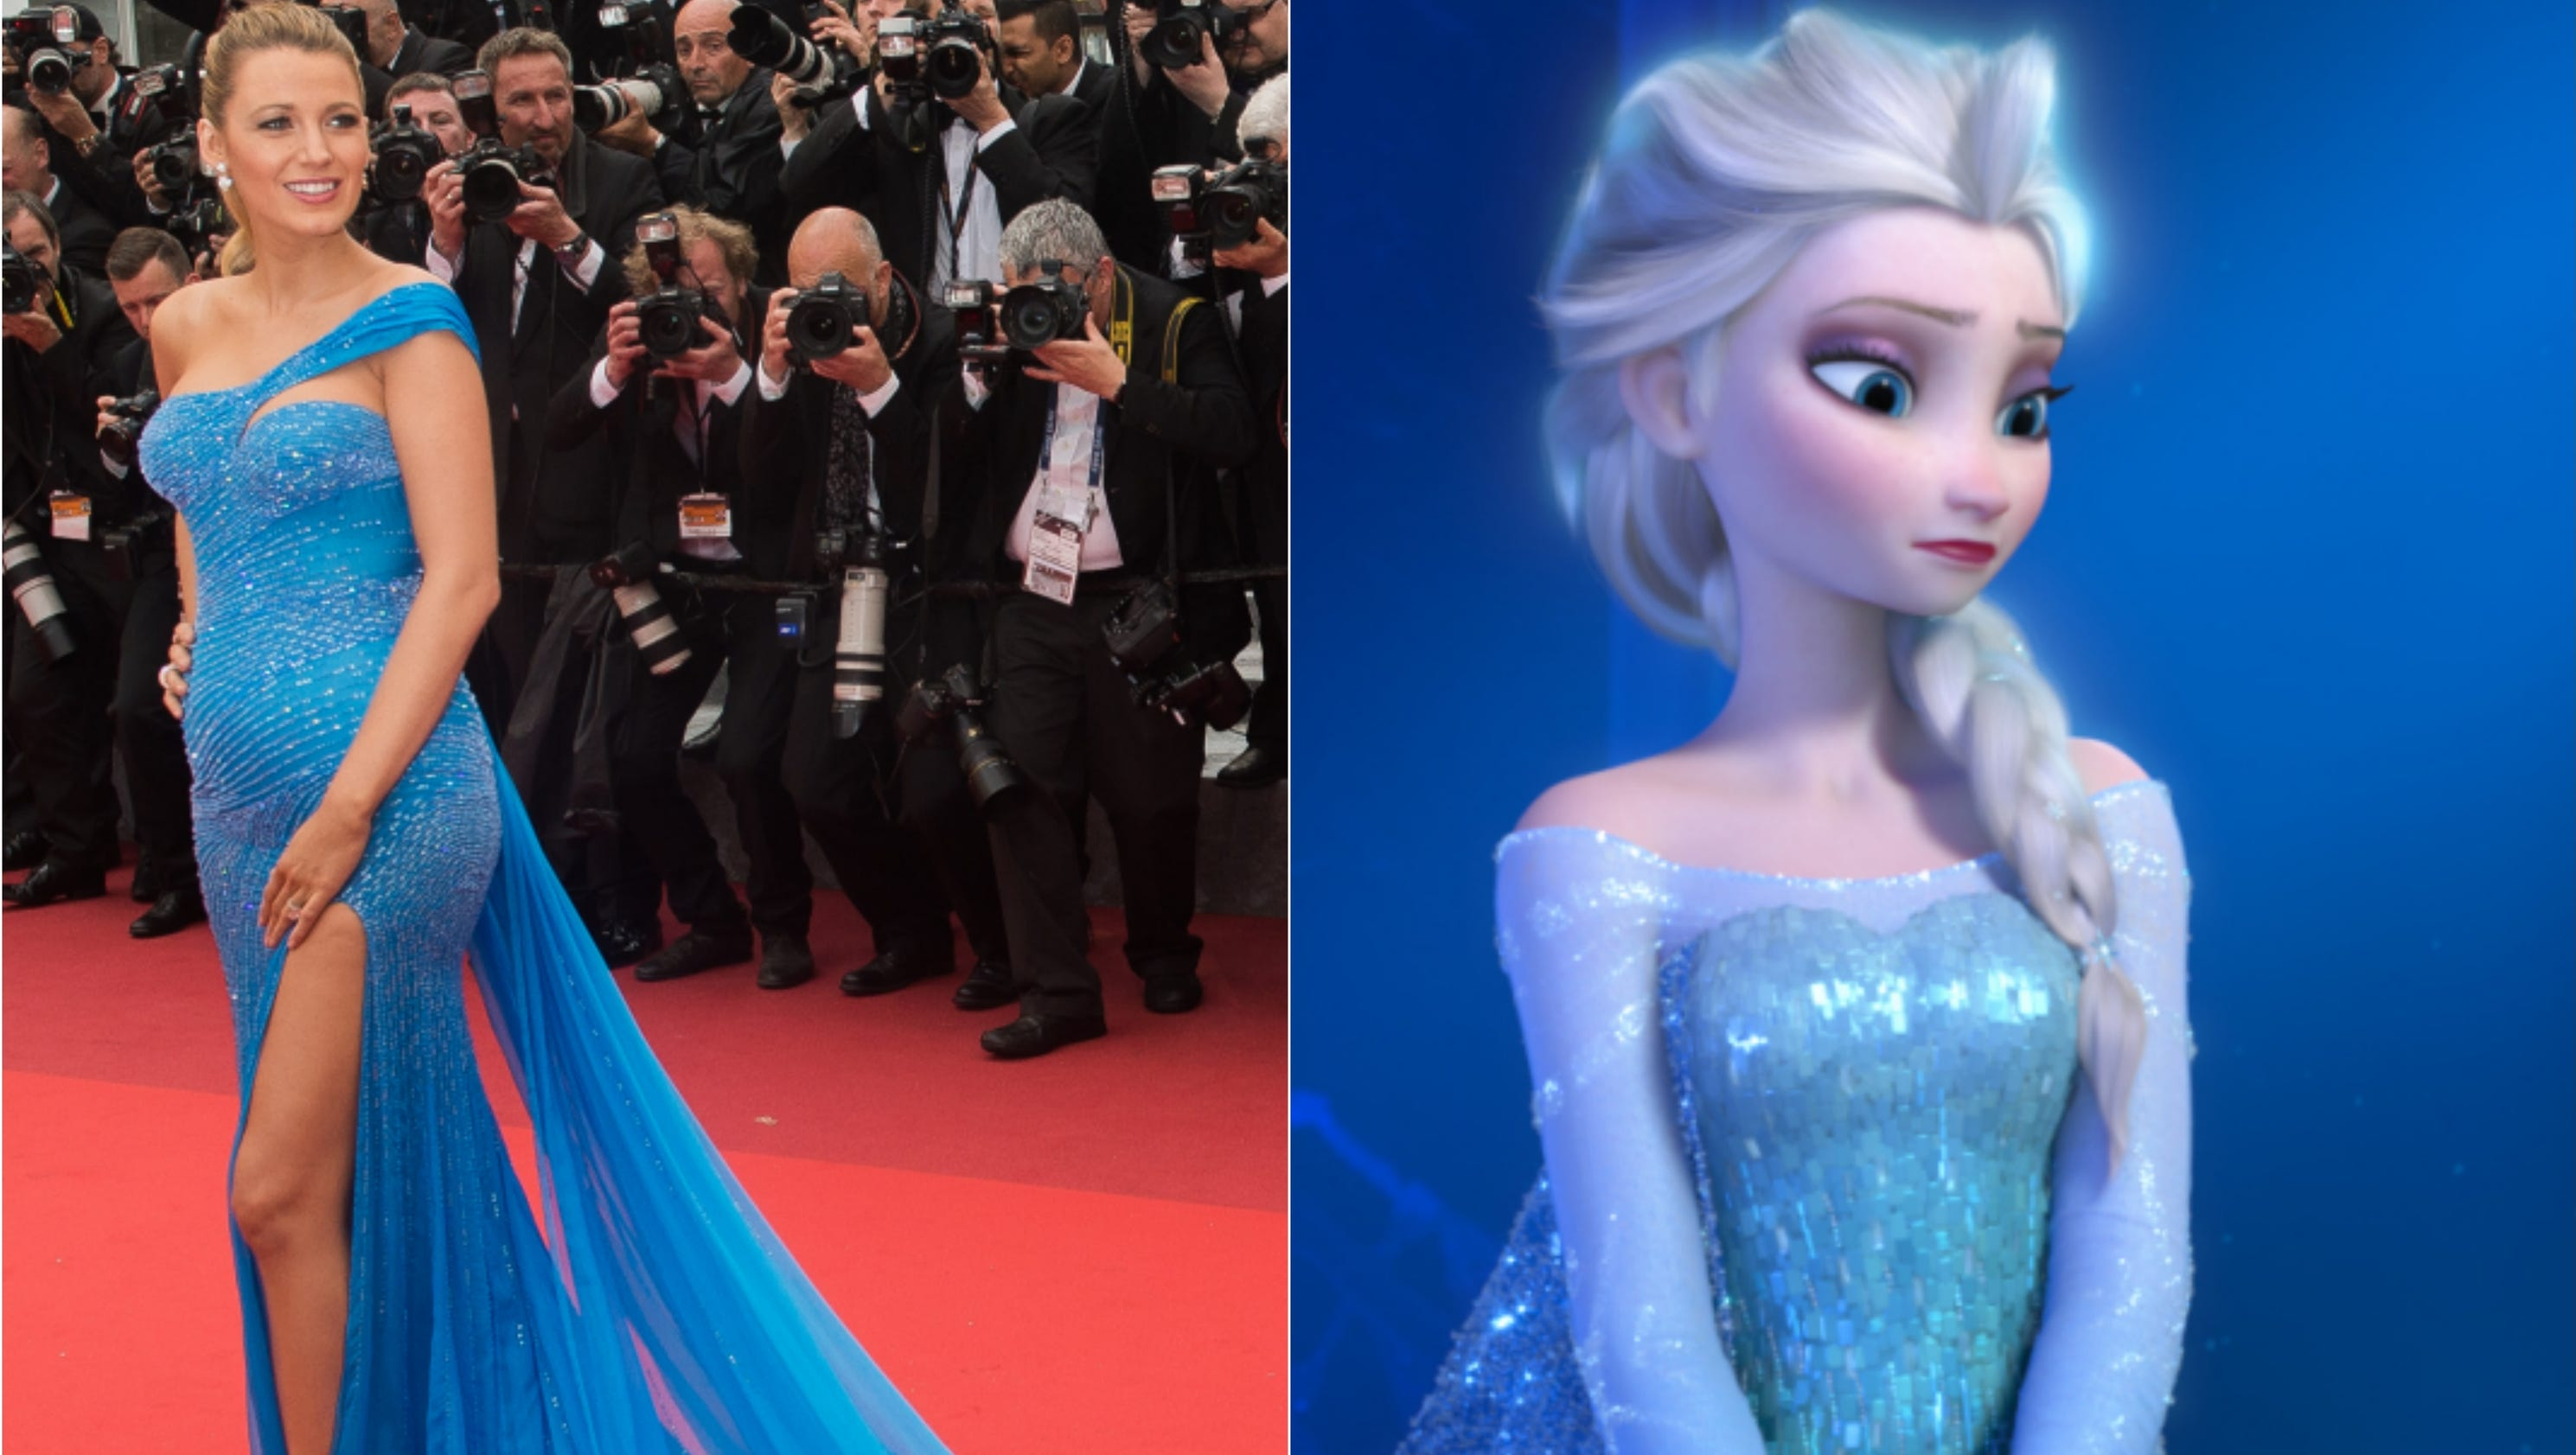 Blake Lively: The Disney princess of Cannes